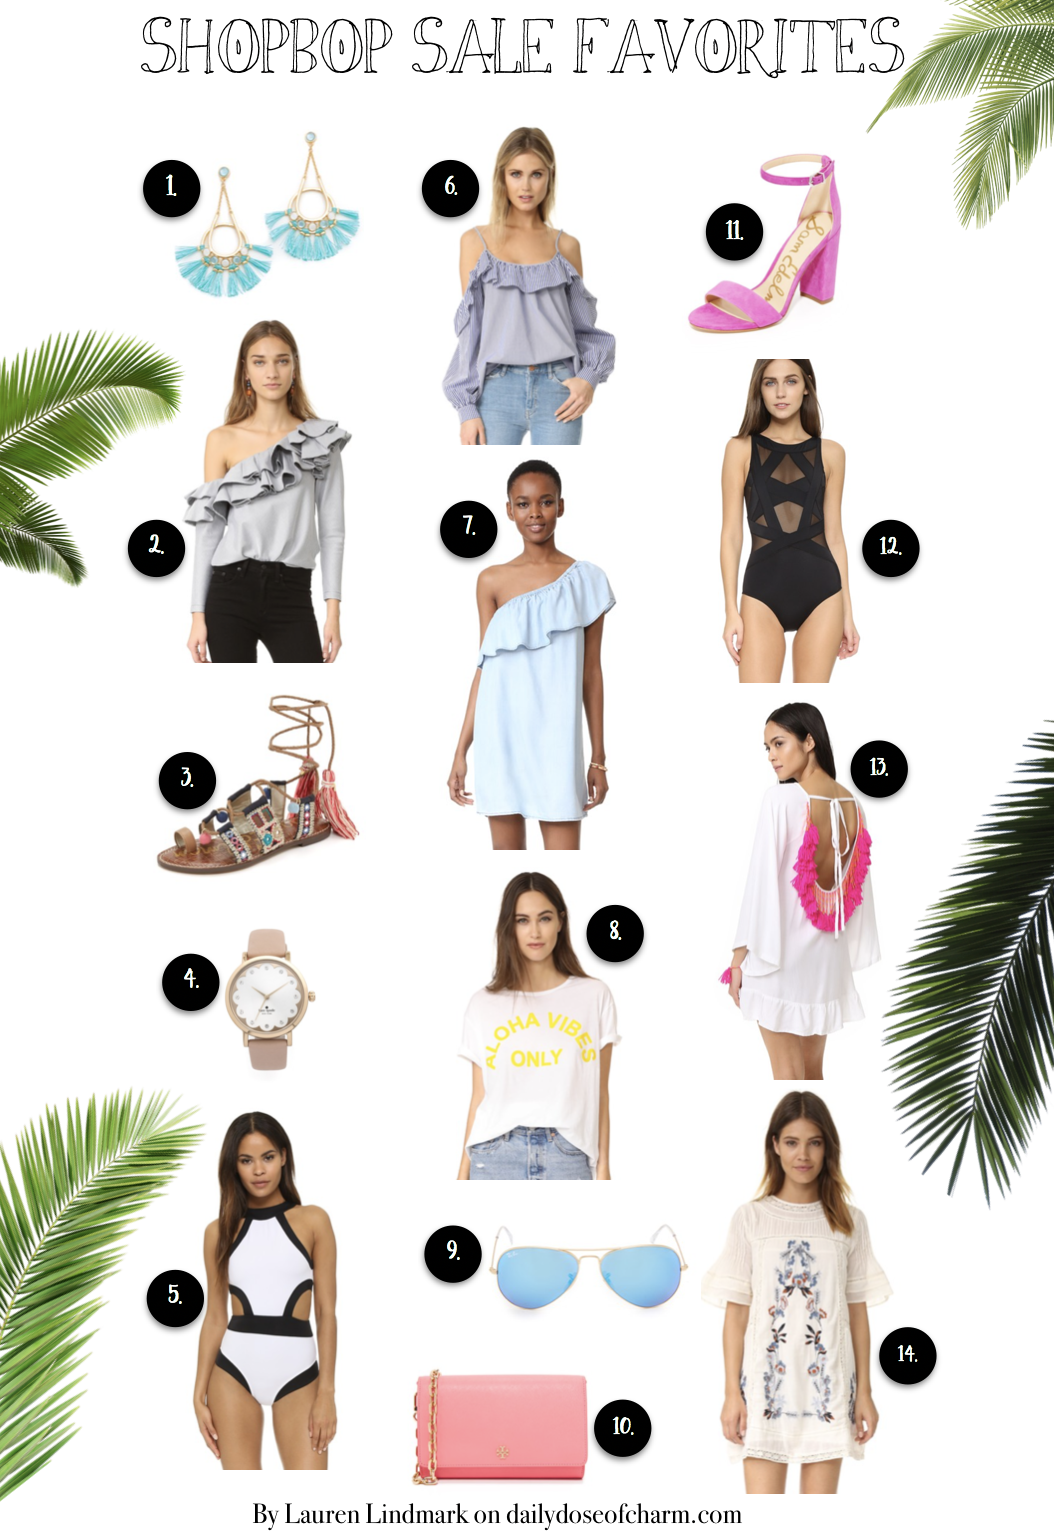 My Shopbop 2017 sale picks! I am in love with all these picks, it was hard to narrow them down! Everything is 15-25% off so it's a great deal! Make sure to head to Shopbop to see! By Lauren Lindmark on dailydoseofcharm.com daily dose of charm